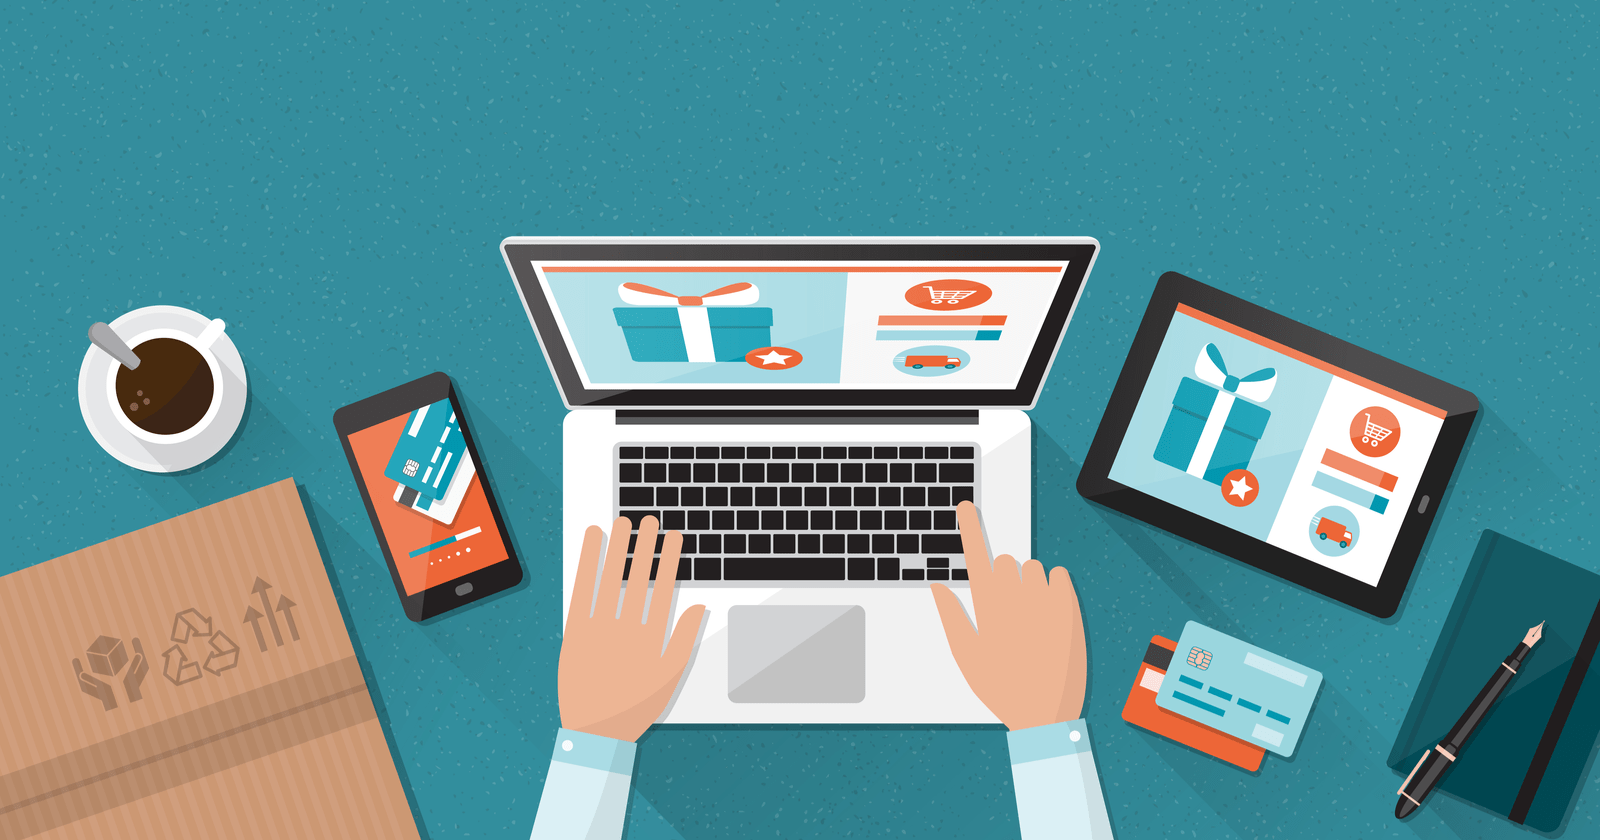 Top 5 Ecommerce Mistakes You Need To Avoid When Starting Your First Business